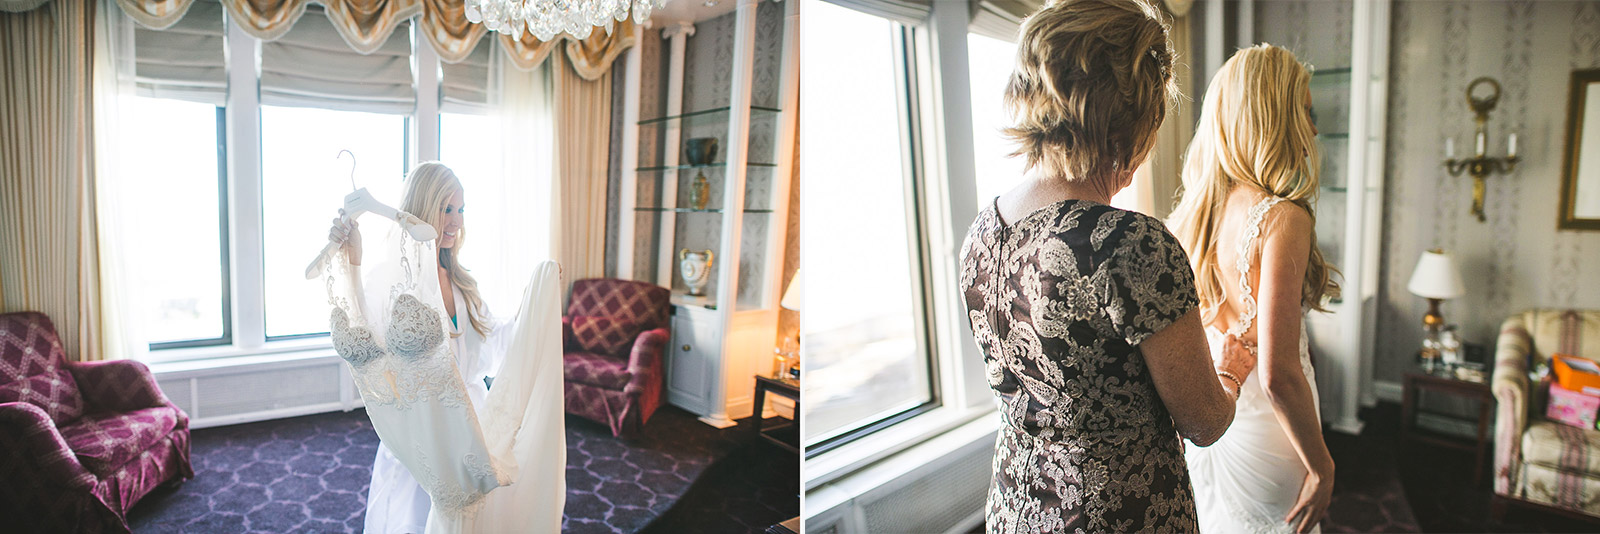 11 bride putting on dress - Kayla + Terry // Drake Hotel Chicago Wedding Photos